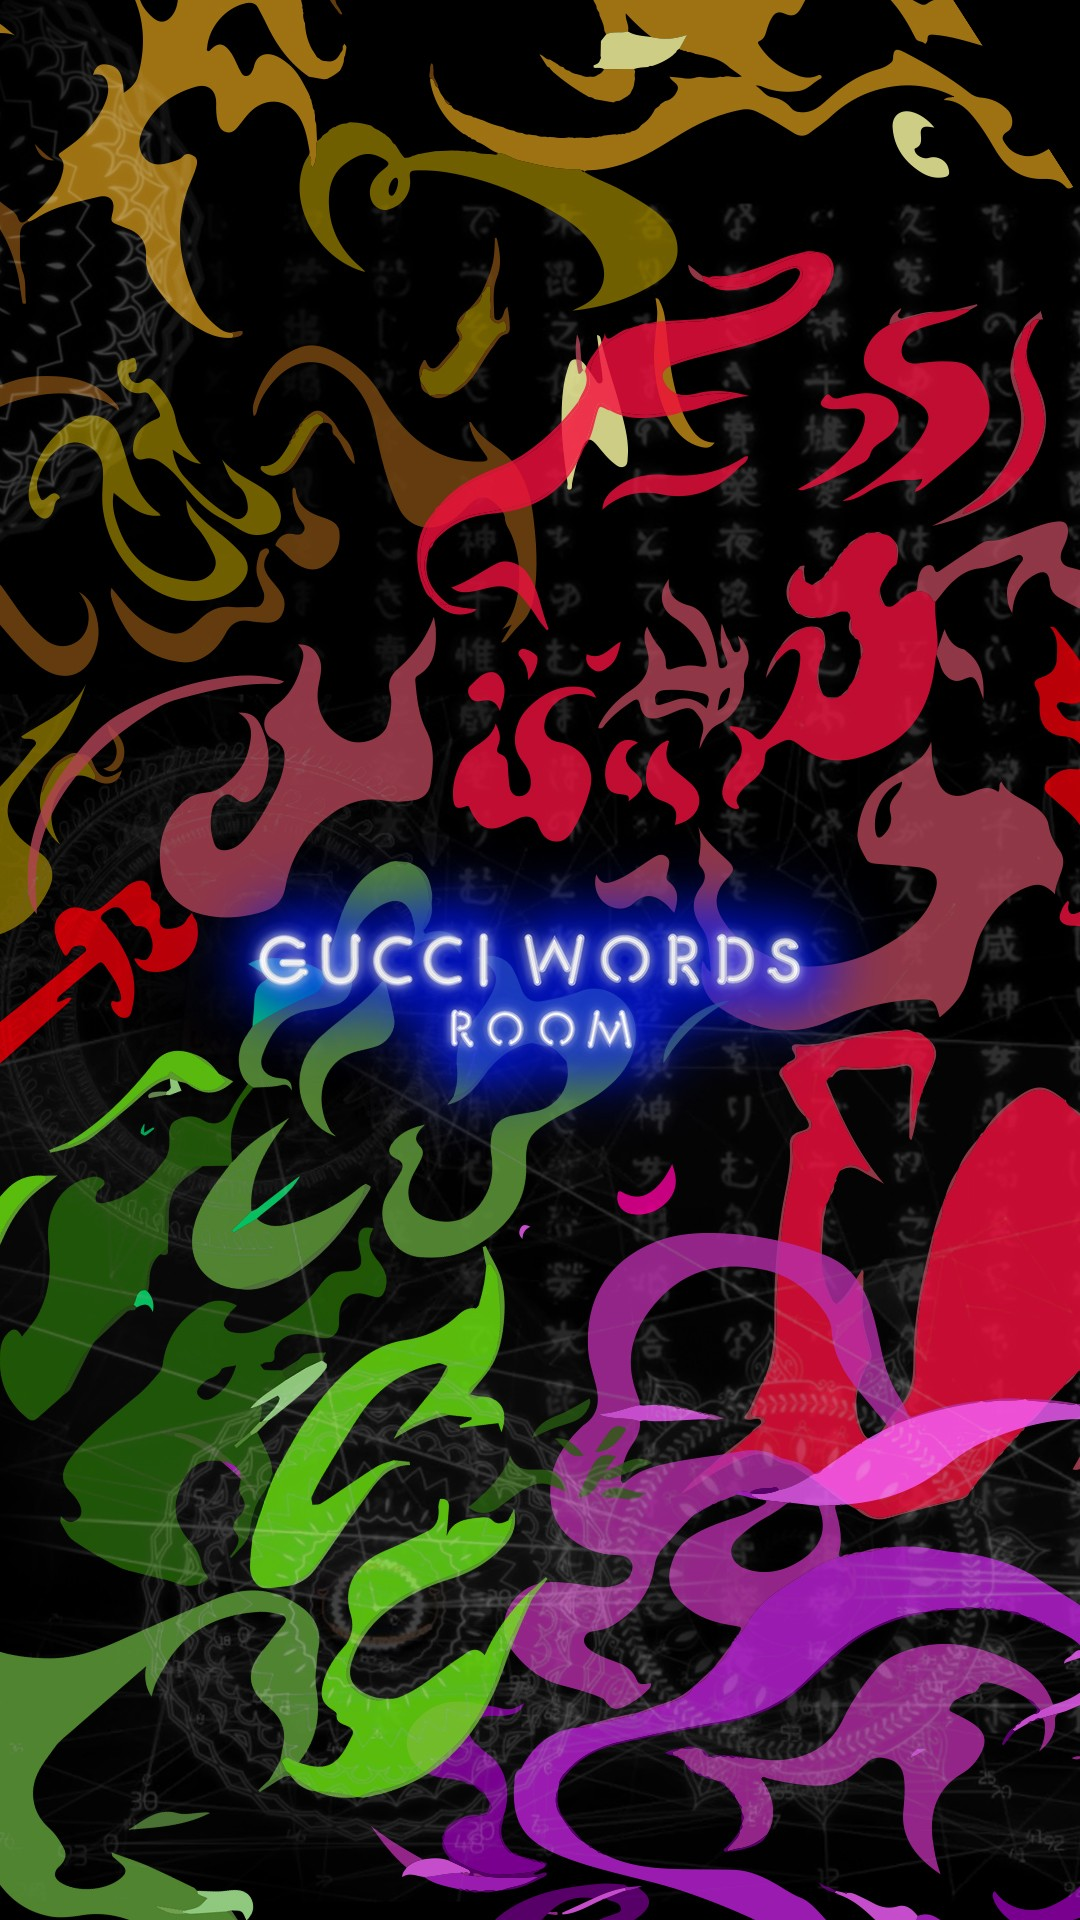 Hd 3d Snake Wallpapers Gucci Wallpapers For Iphone Mobile Pixelstalk Net